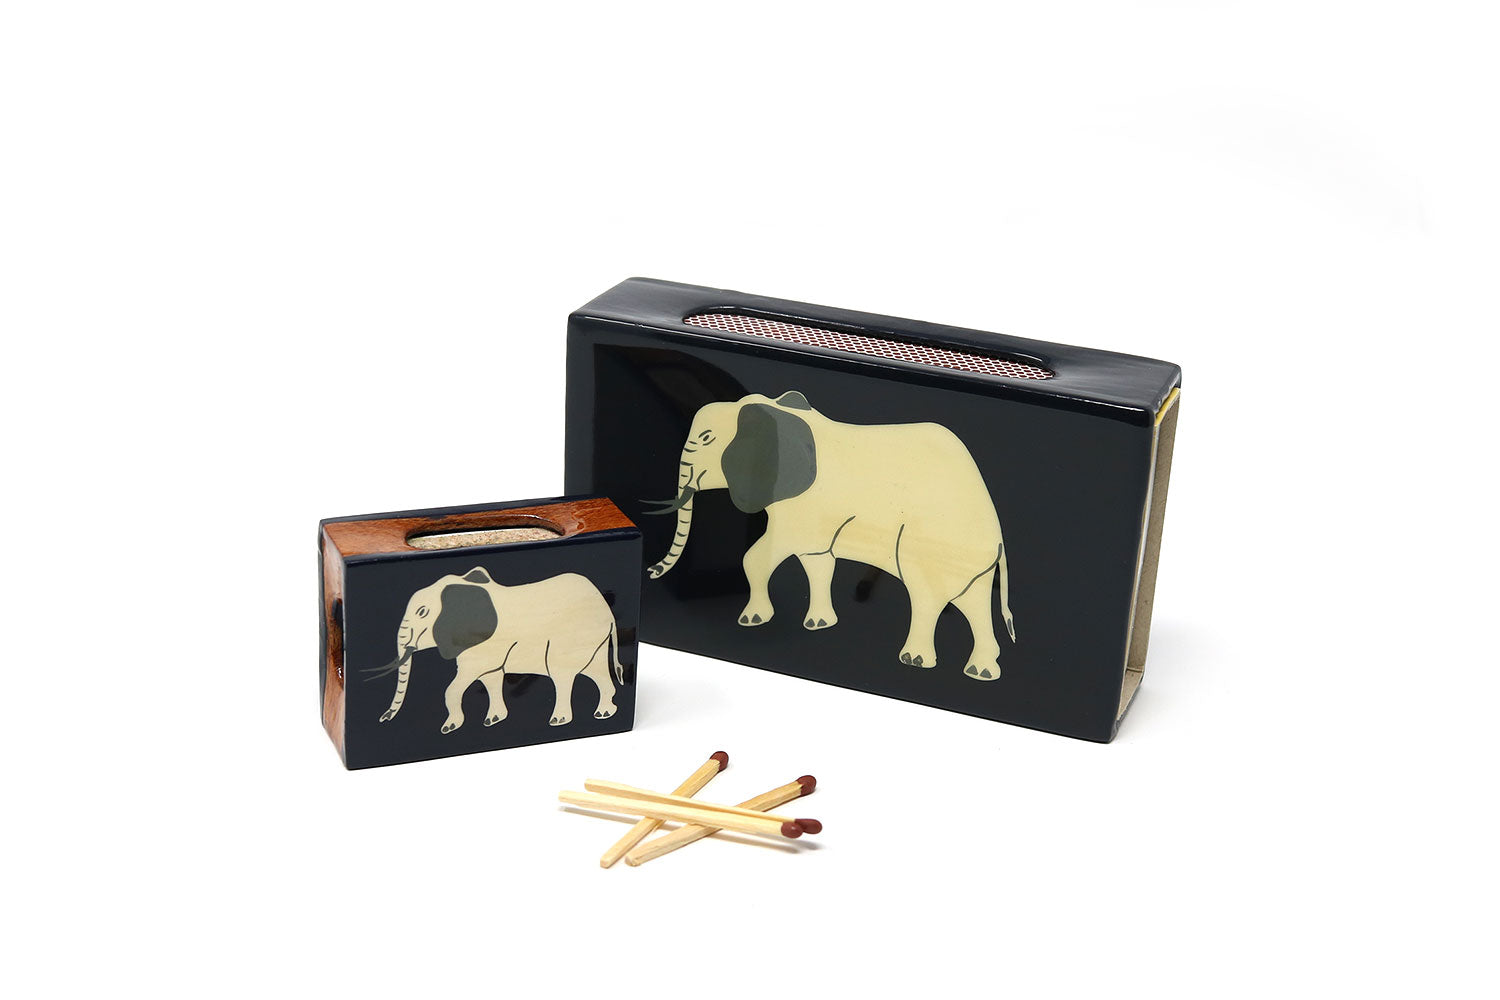 Elephant Matchbox Covers, White on Graphite - ASSiA